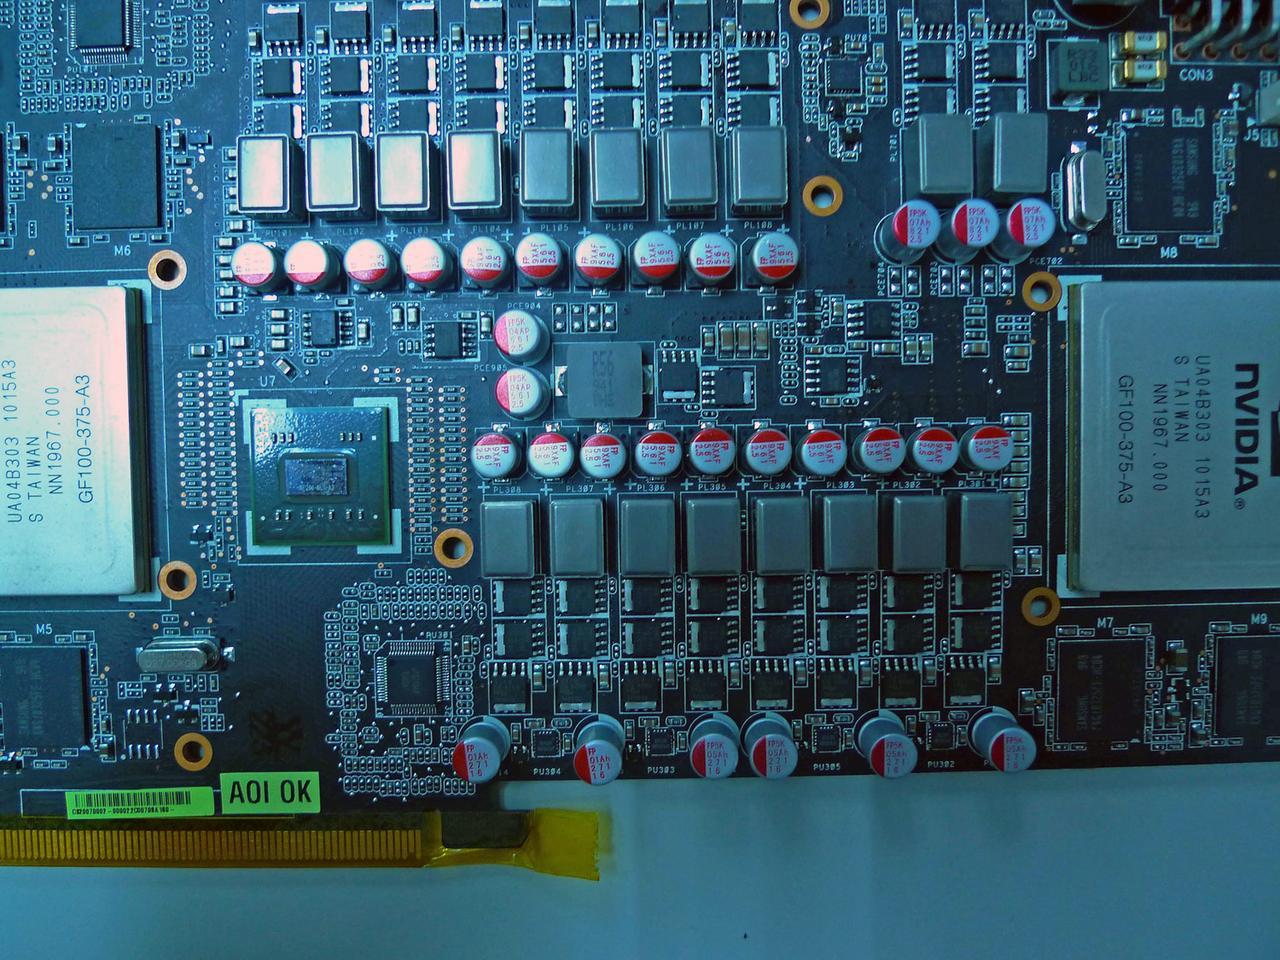 """ASUS claims that its new monster, which will have over 3GB of memory on a single circuit board, is """"destined to be the fastest graphics card on the planet"""""""